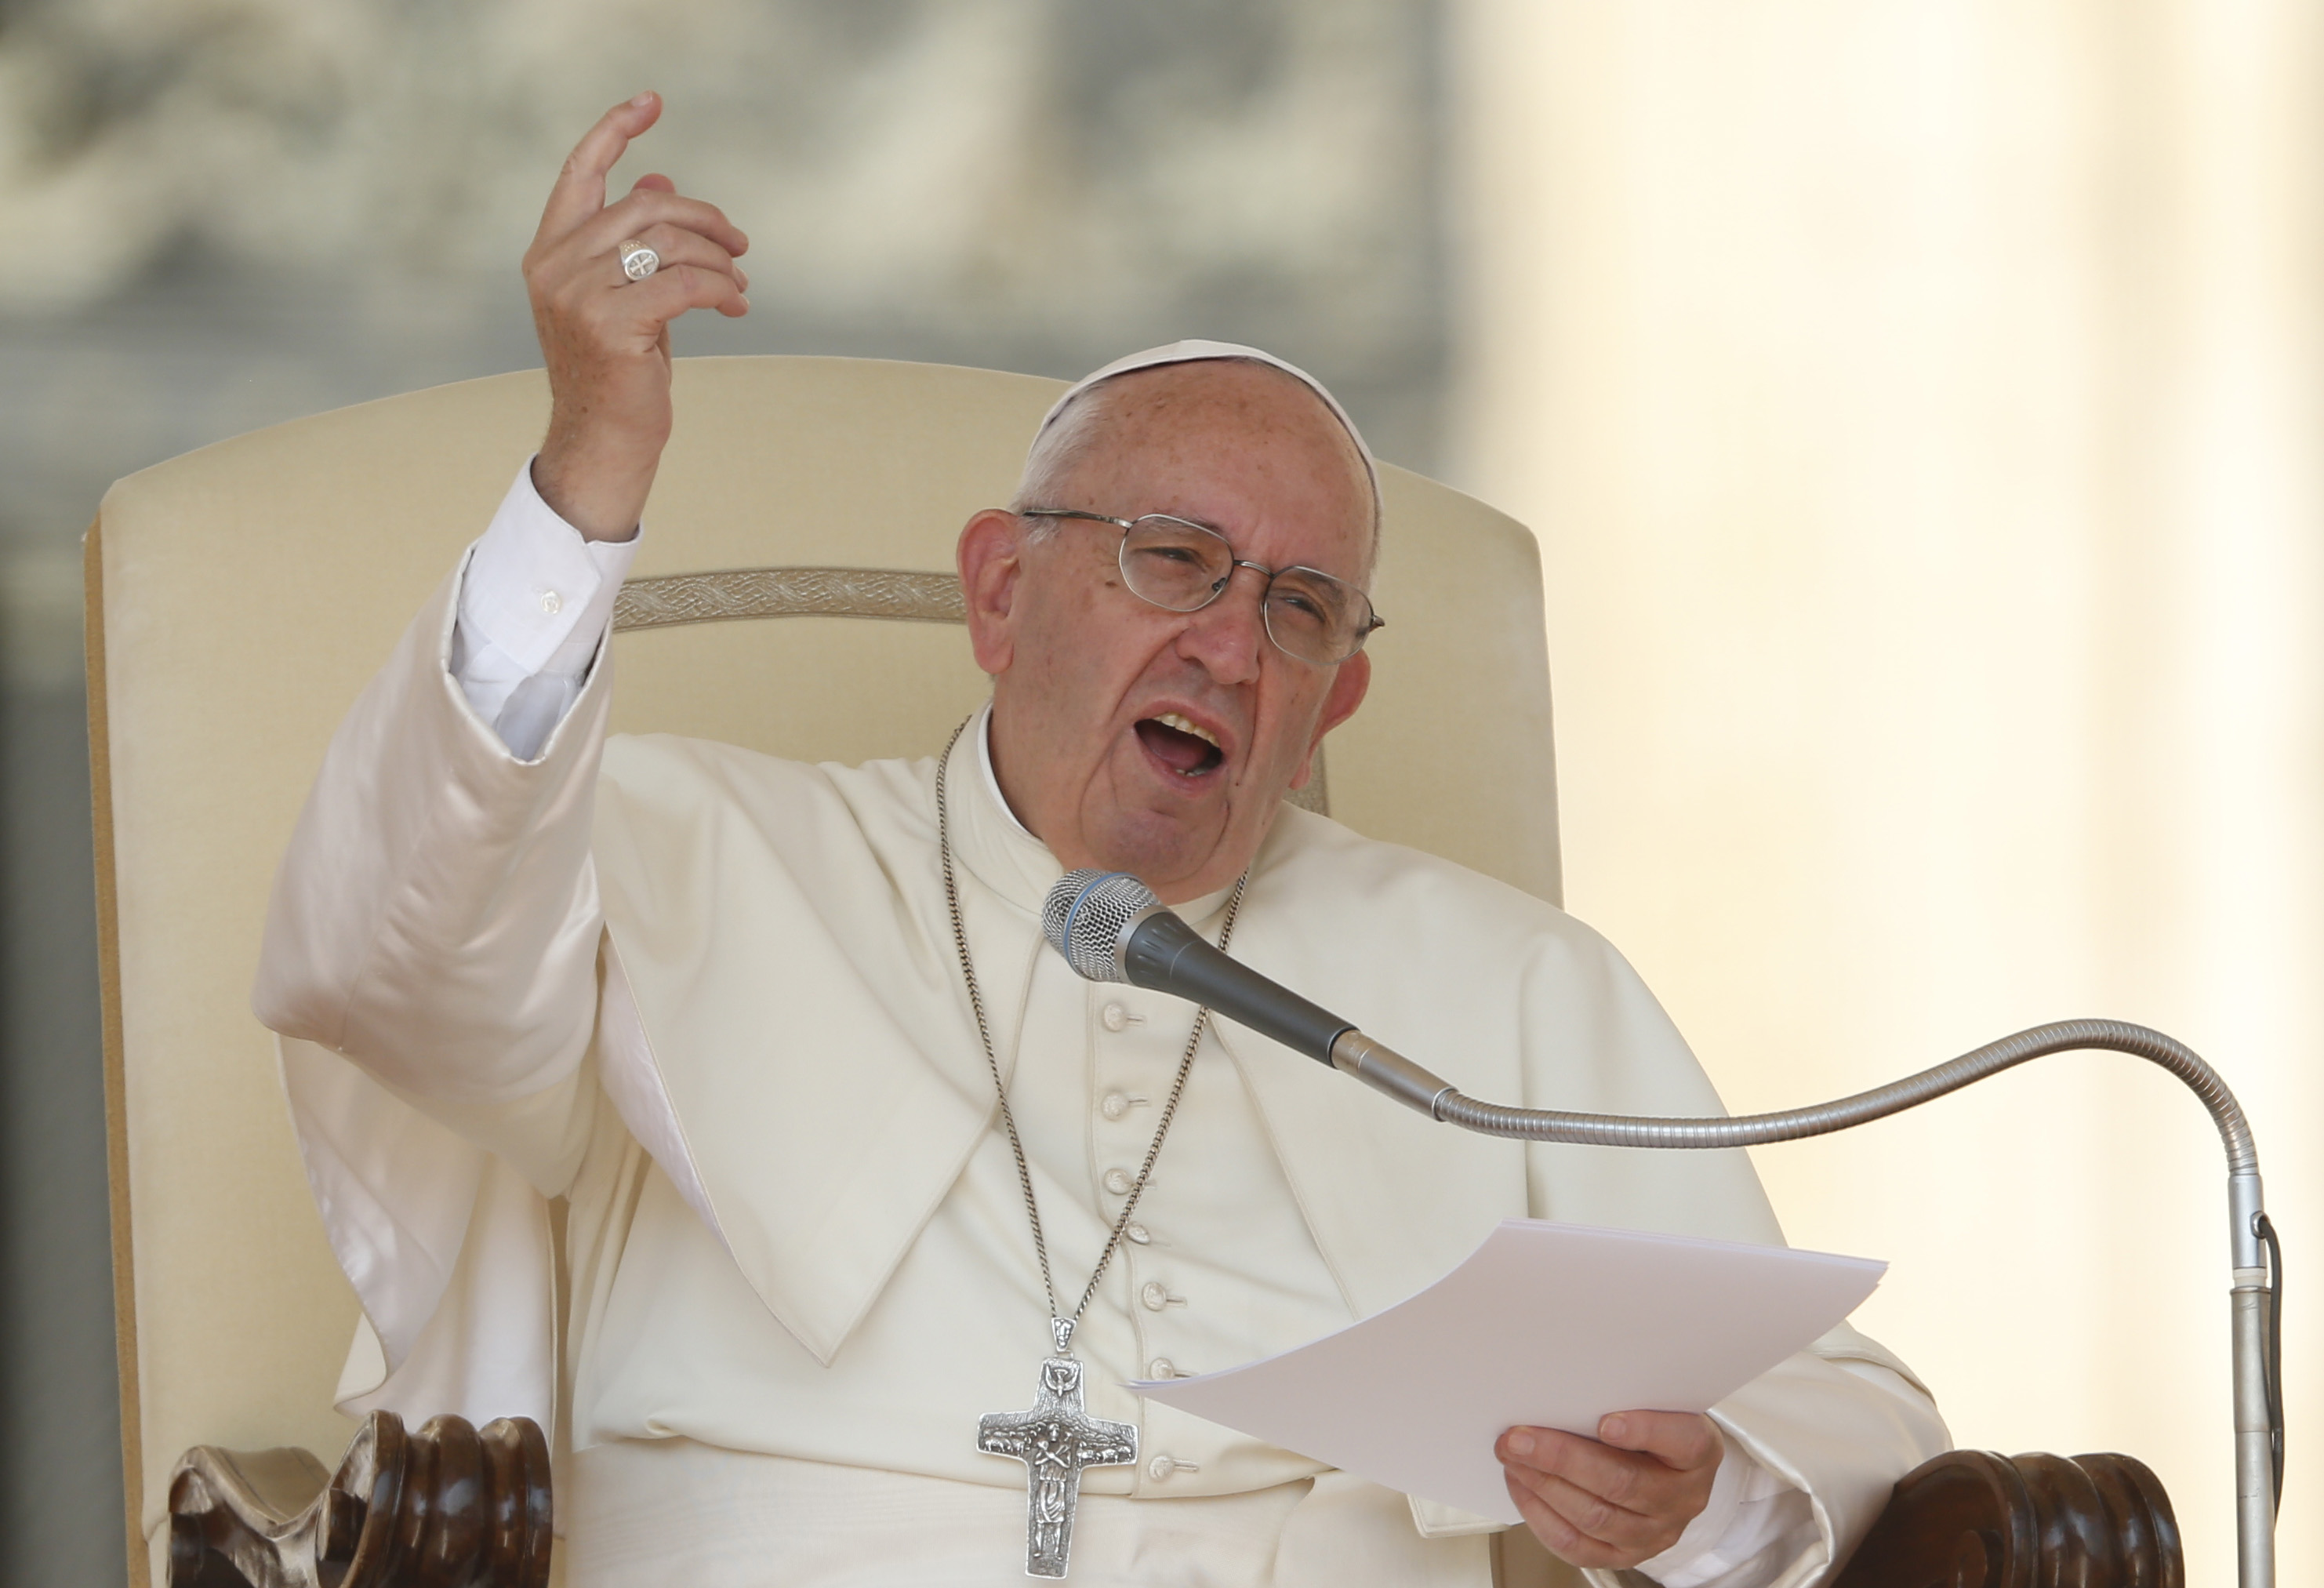 Pastors who become princes are far from Jesus' spirit, pope says